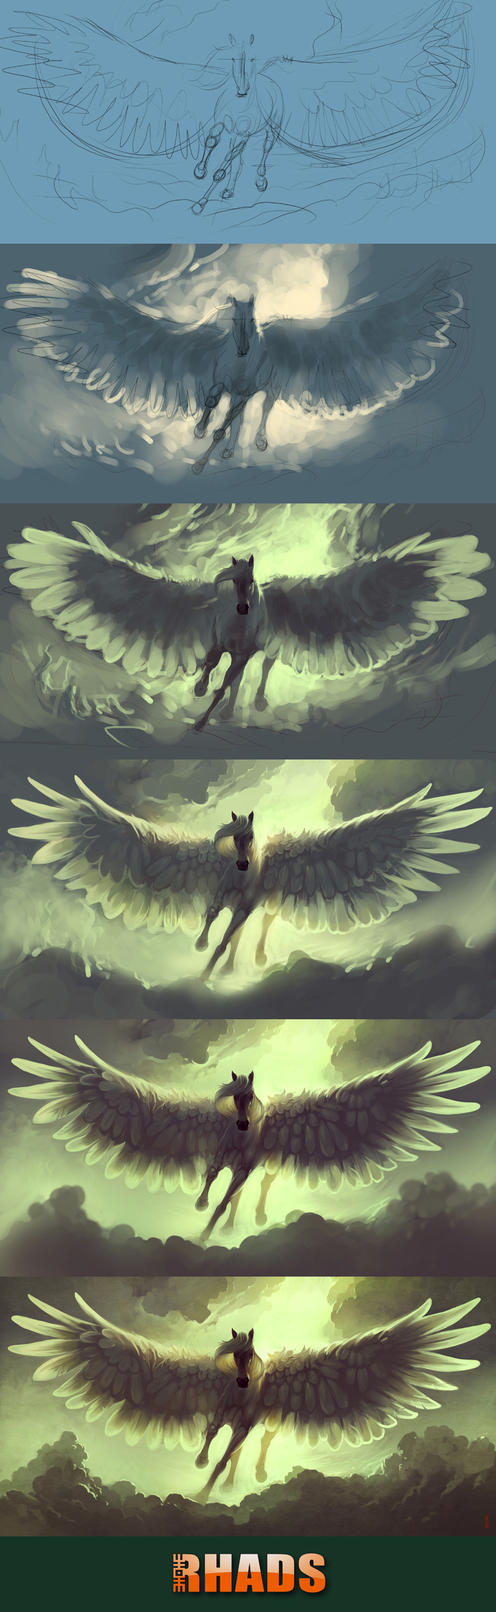 Process of Sky Horse by RHADS